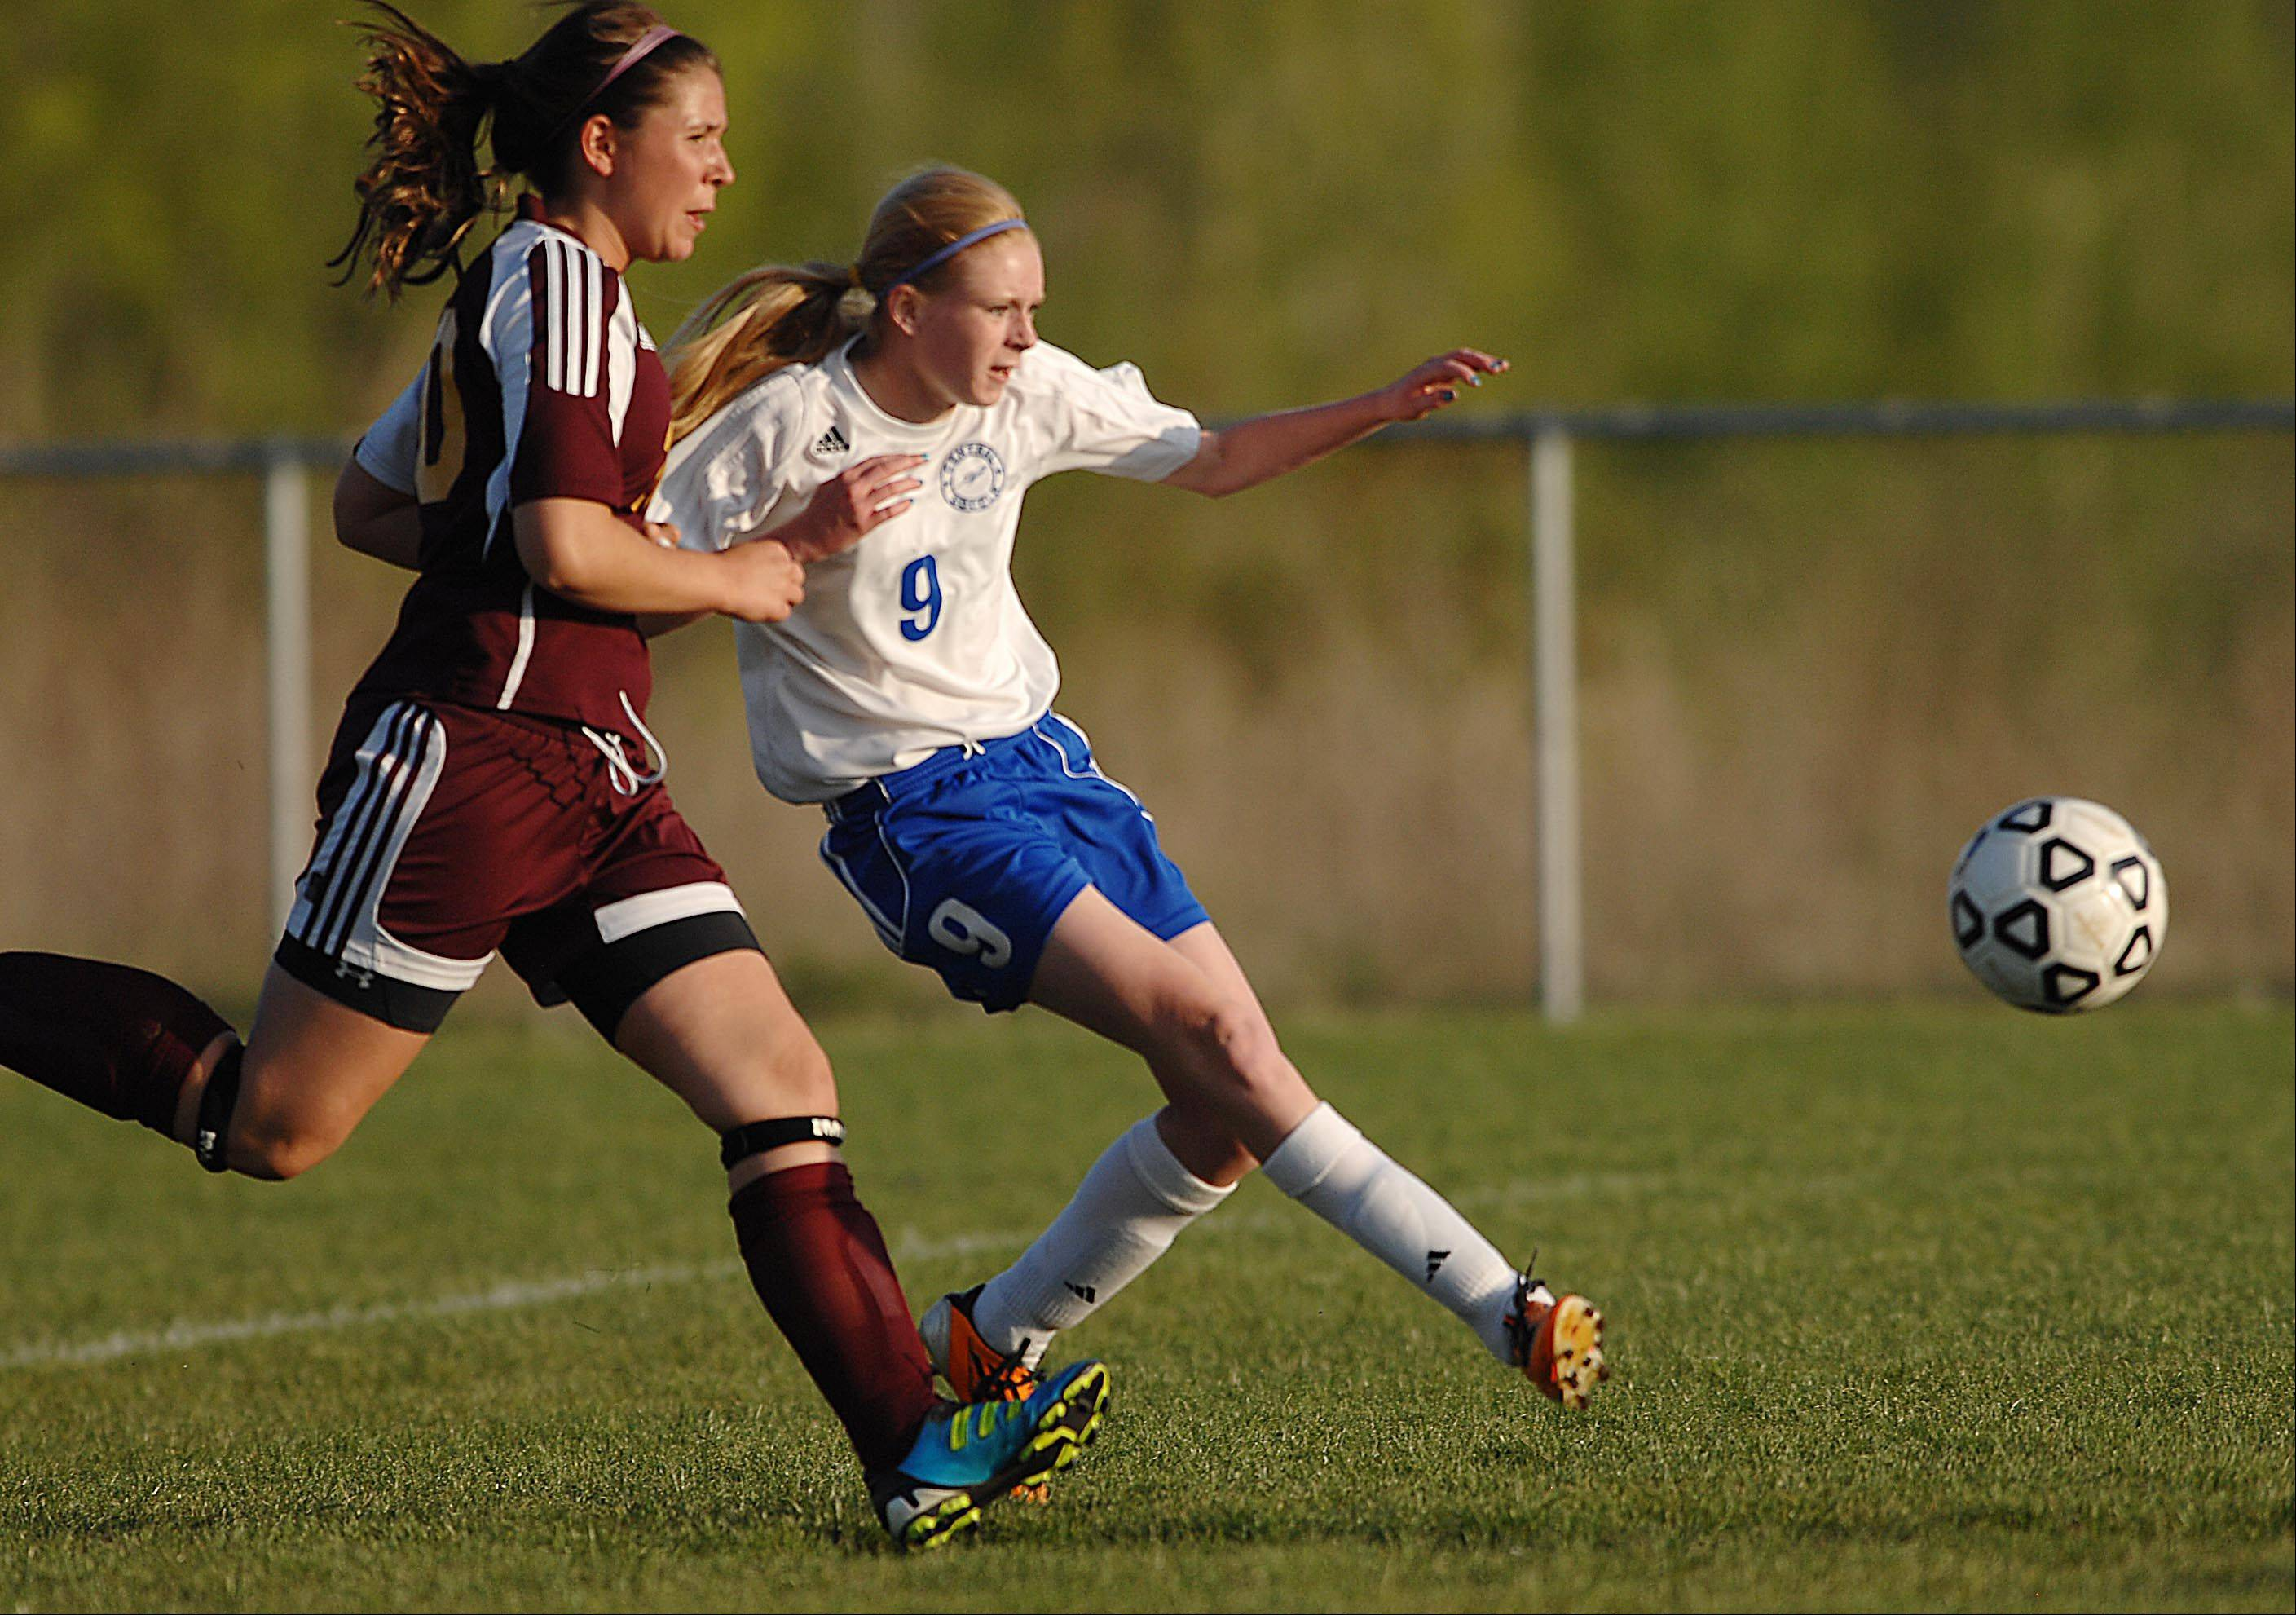 Burlington Central's Courtney Andrew takes a shot as Richmond-Burton's Cassie Owen trails Tuesday in Burlington.